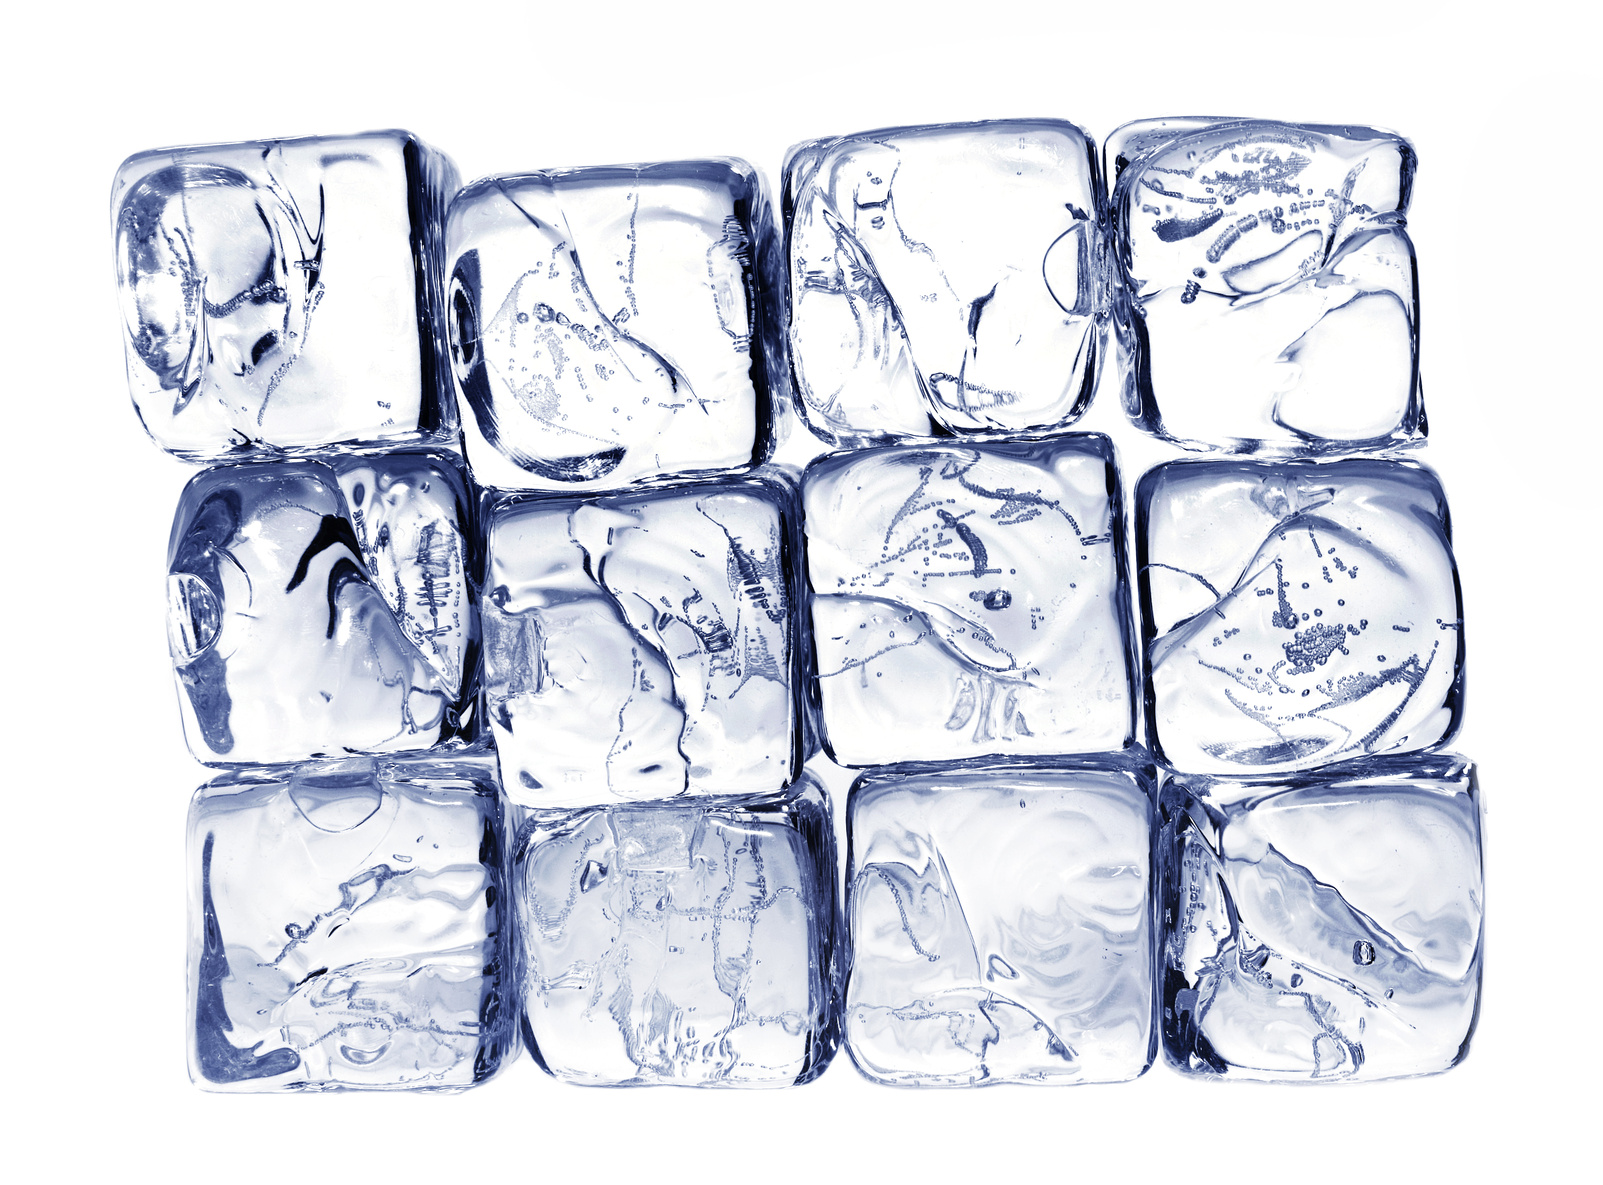 Sex in the ice cubes for modern times